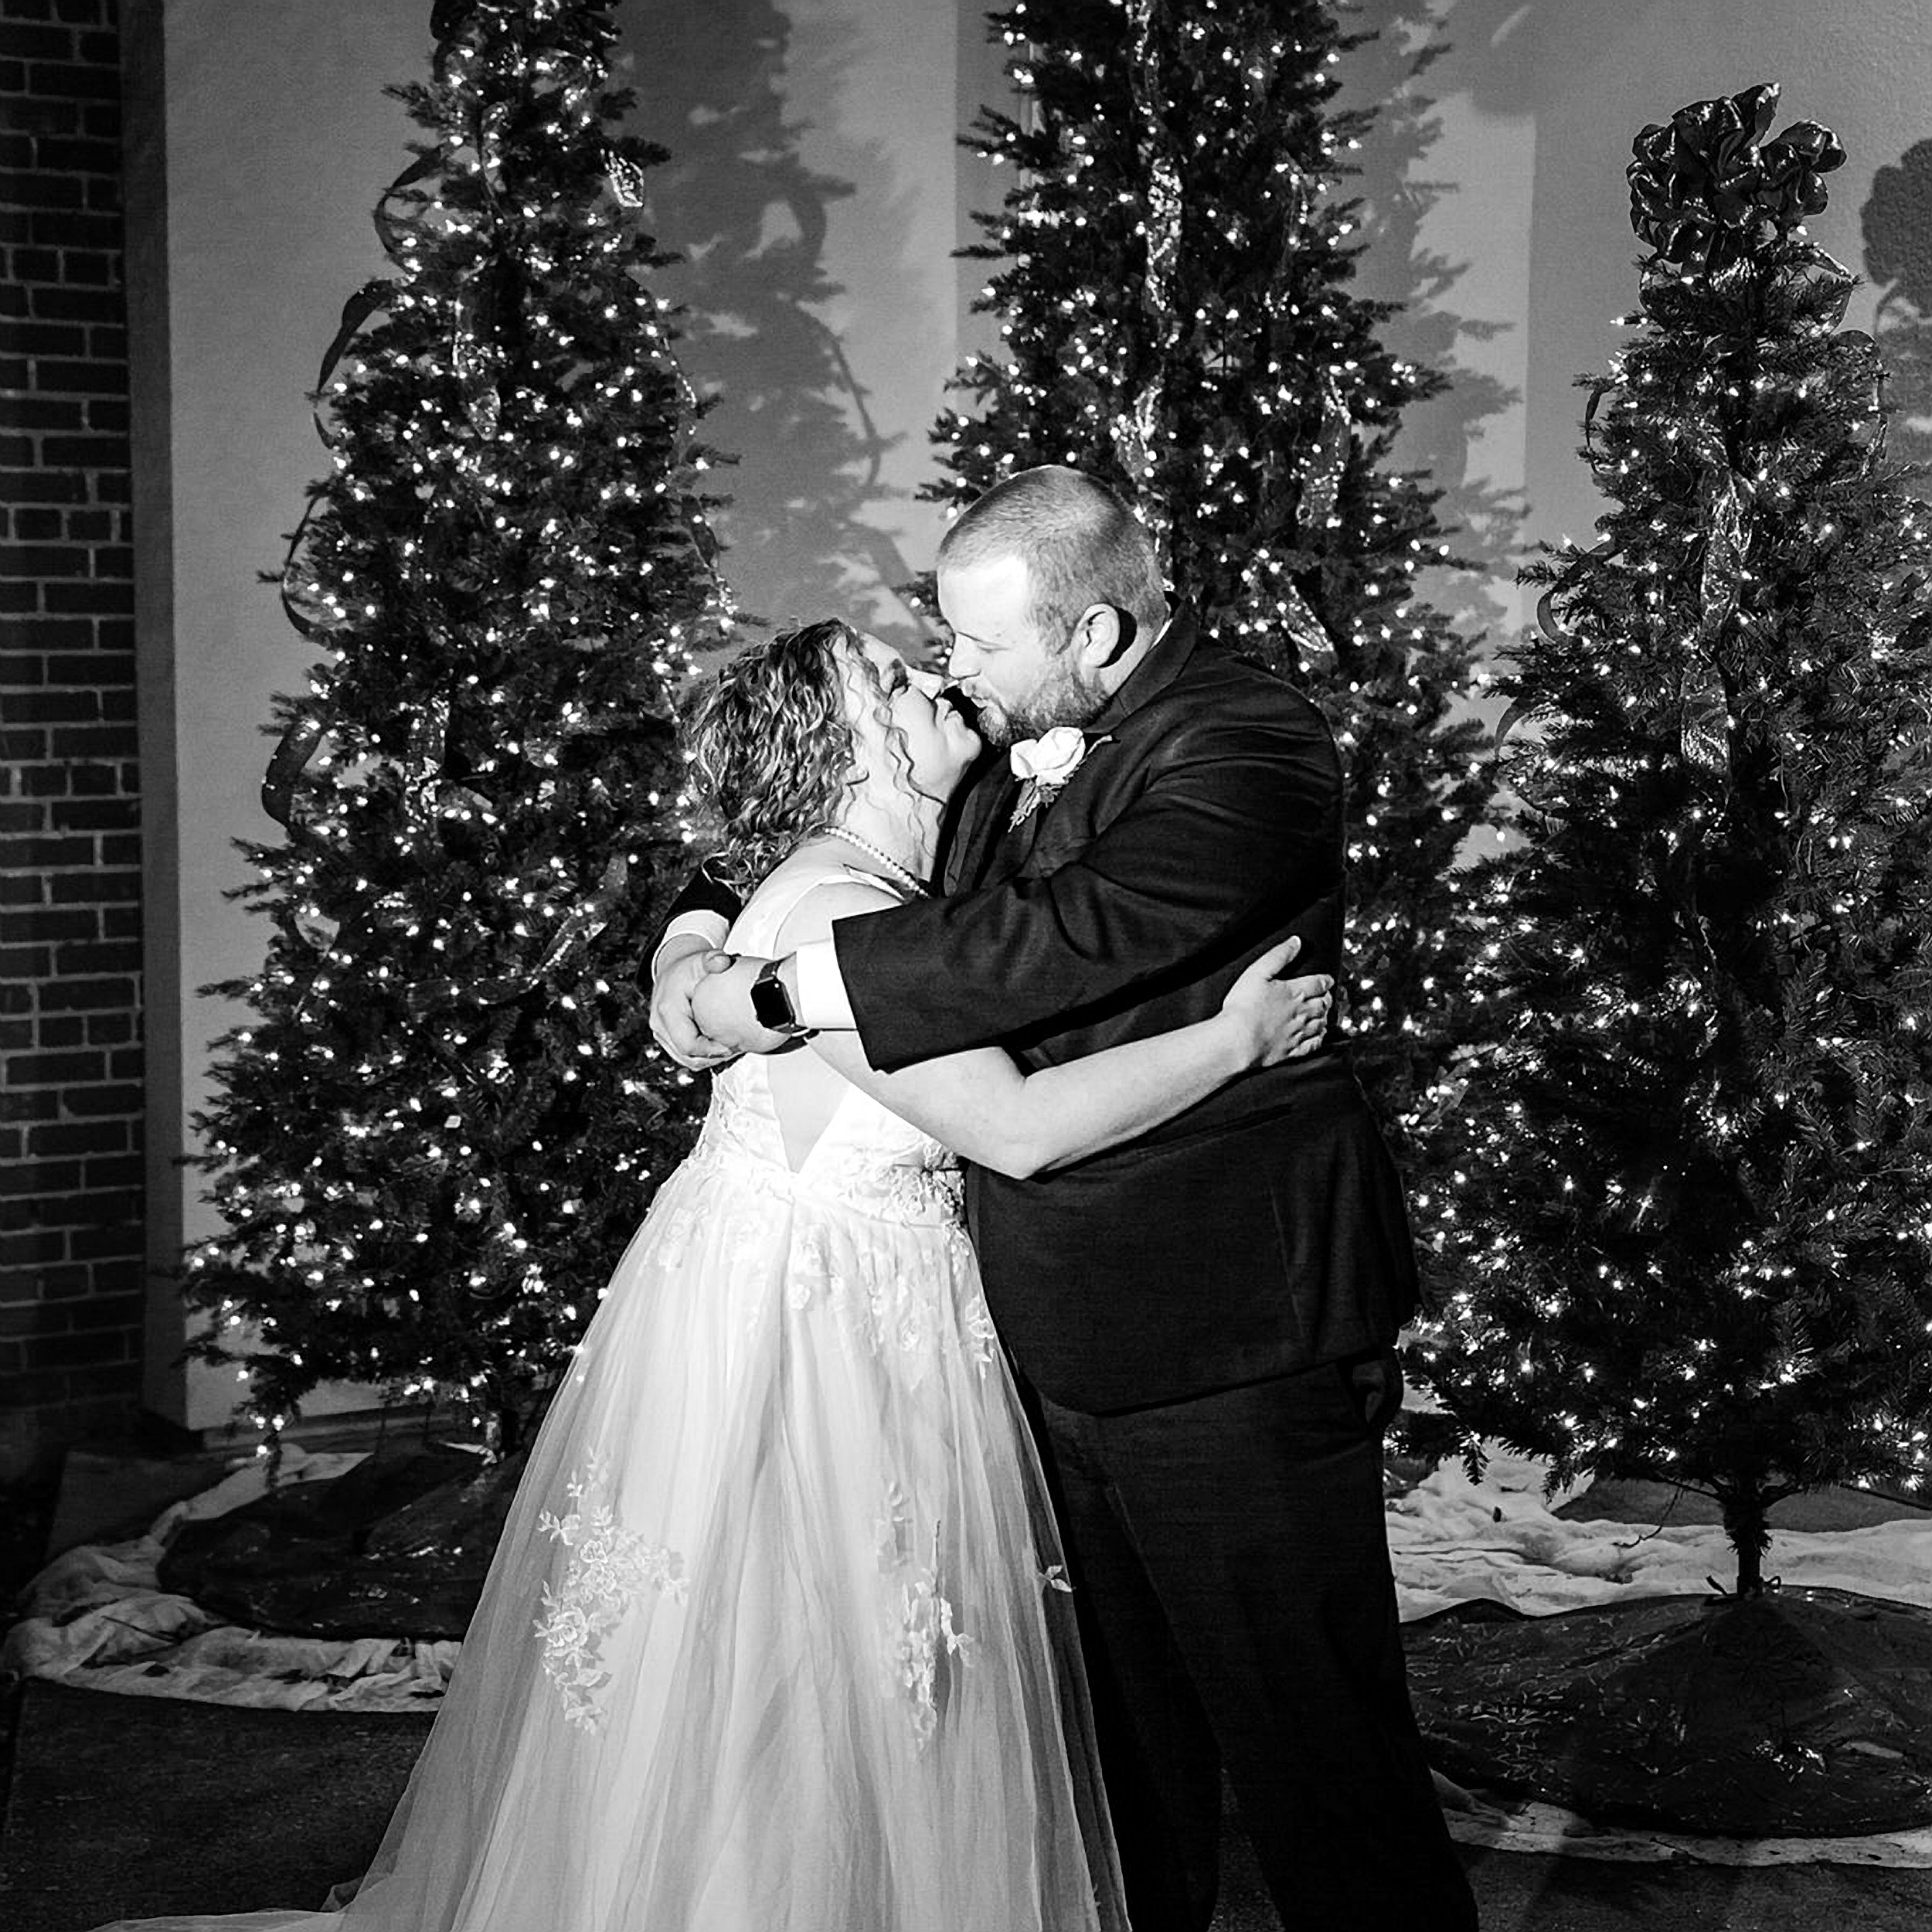 bride groom kiss Christmas trees black and white